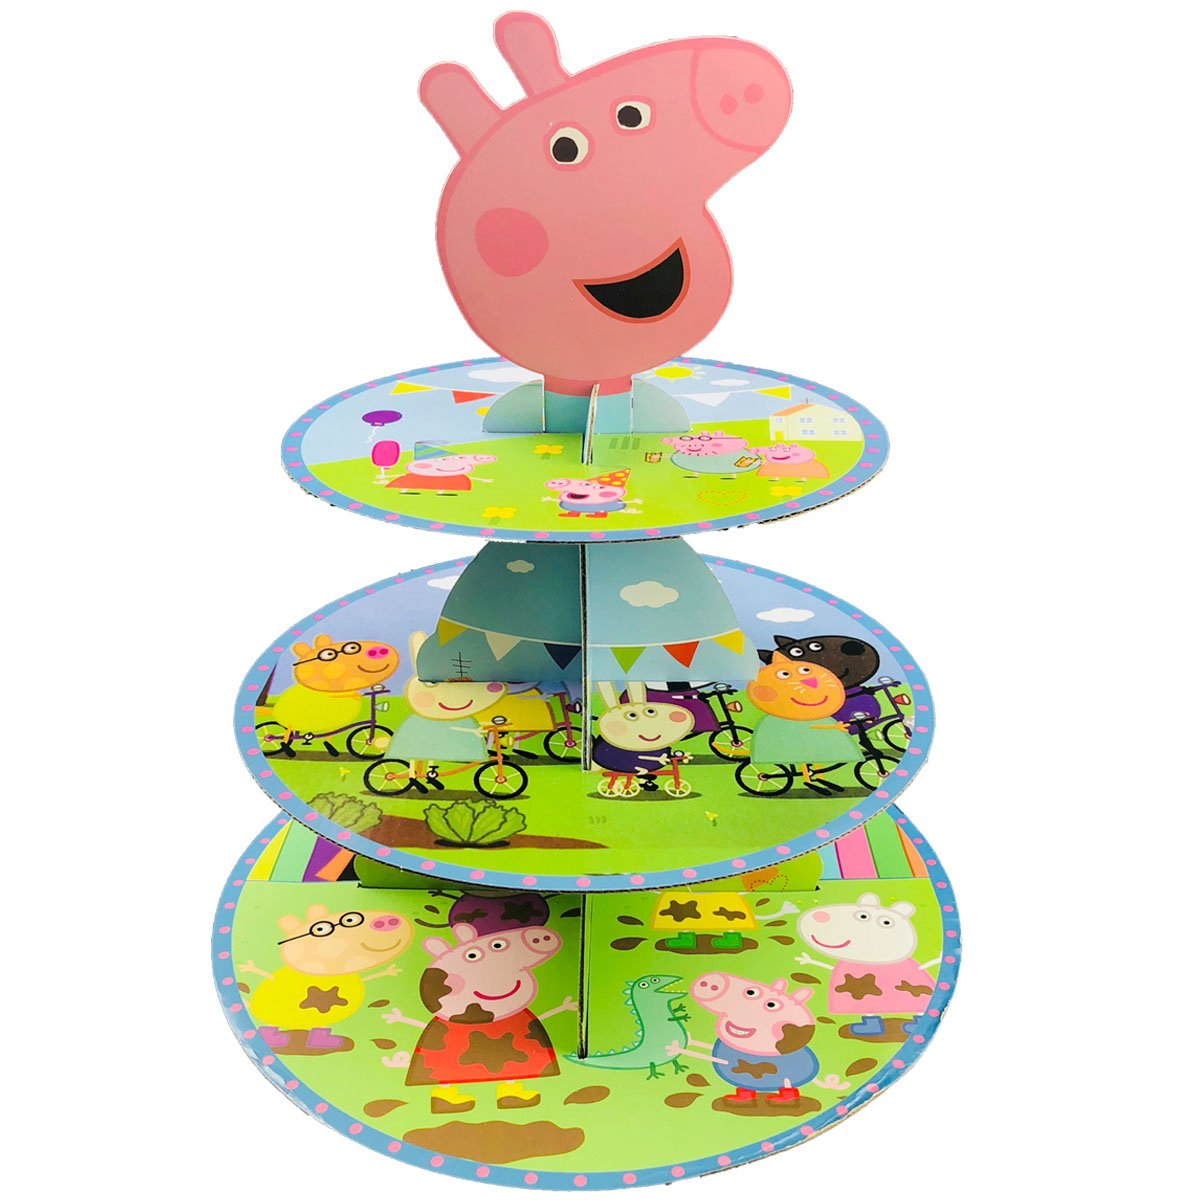 Betop House 3-Tire Peppa Pig Themed Party Cupcake Dessert Stand